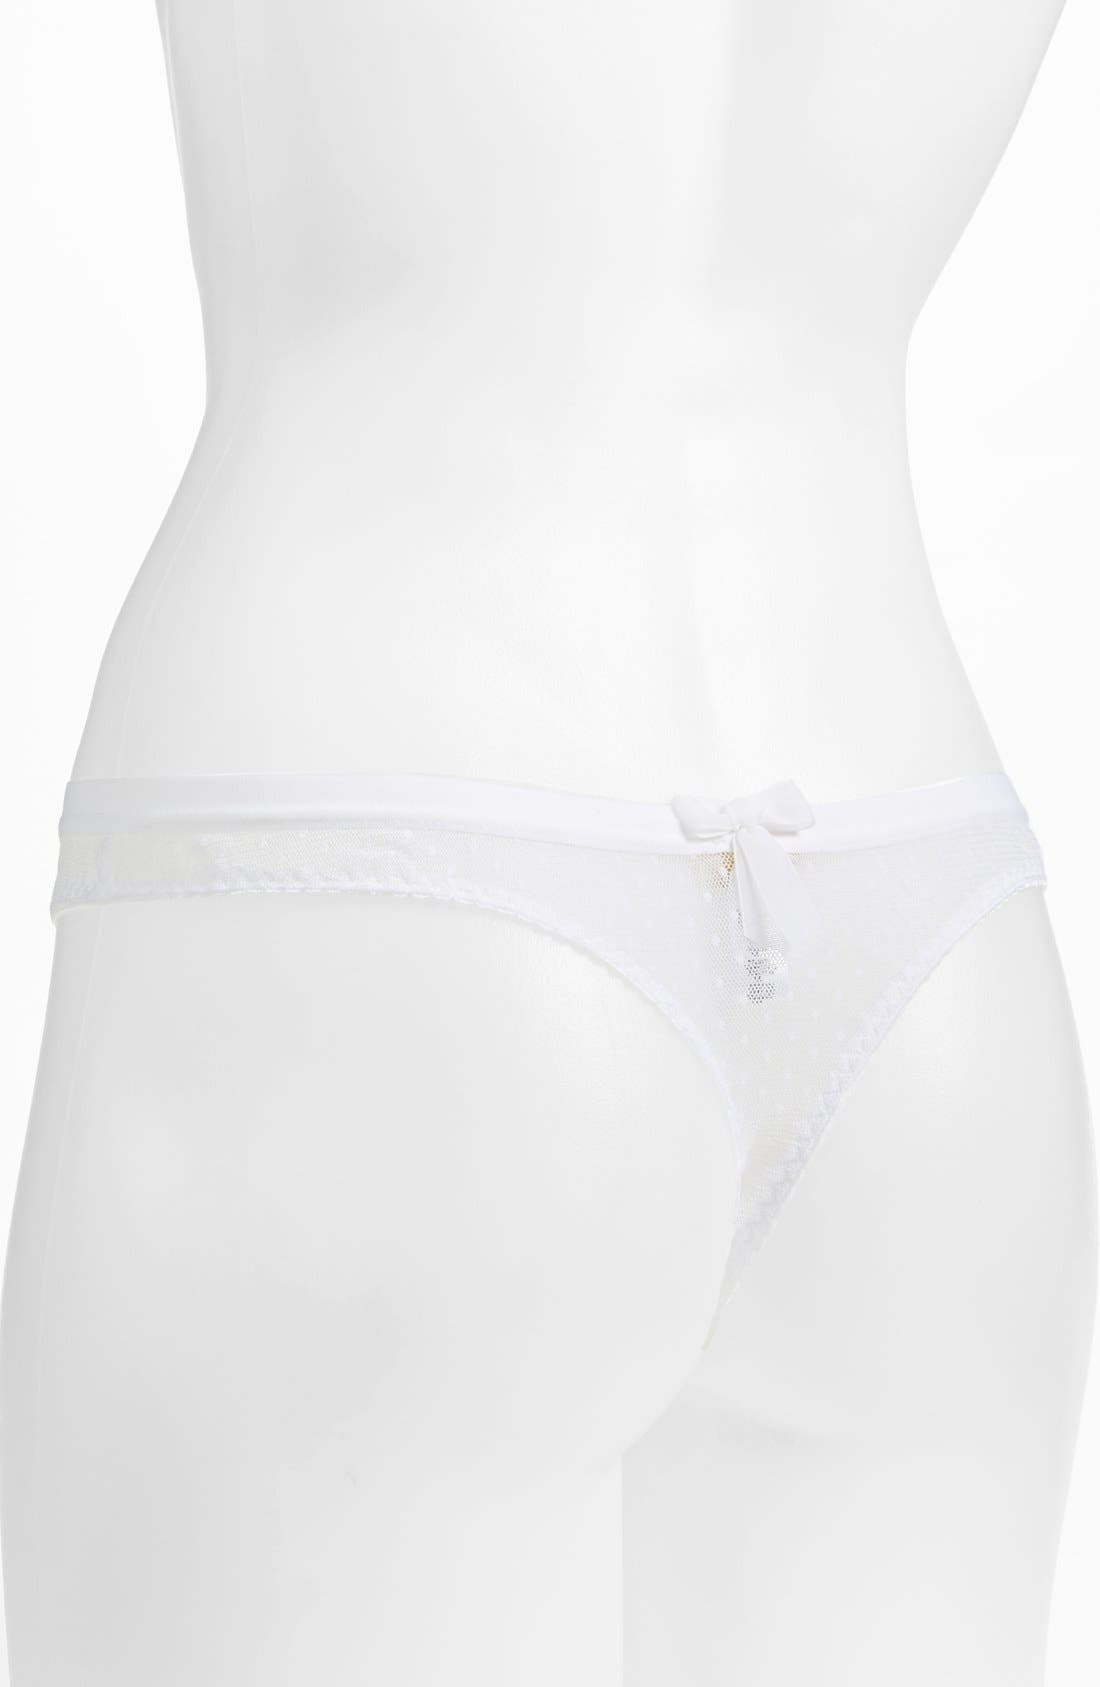 Alternate Image 2  - Cosabella x Erin Fetherston 'Erin Bridal' Swiss Dot Low Rise Thong